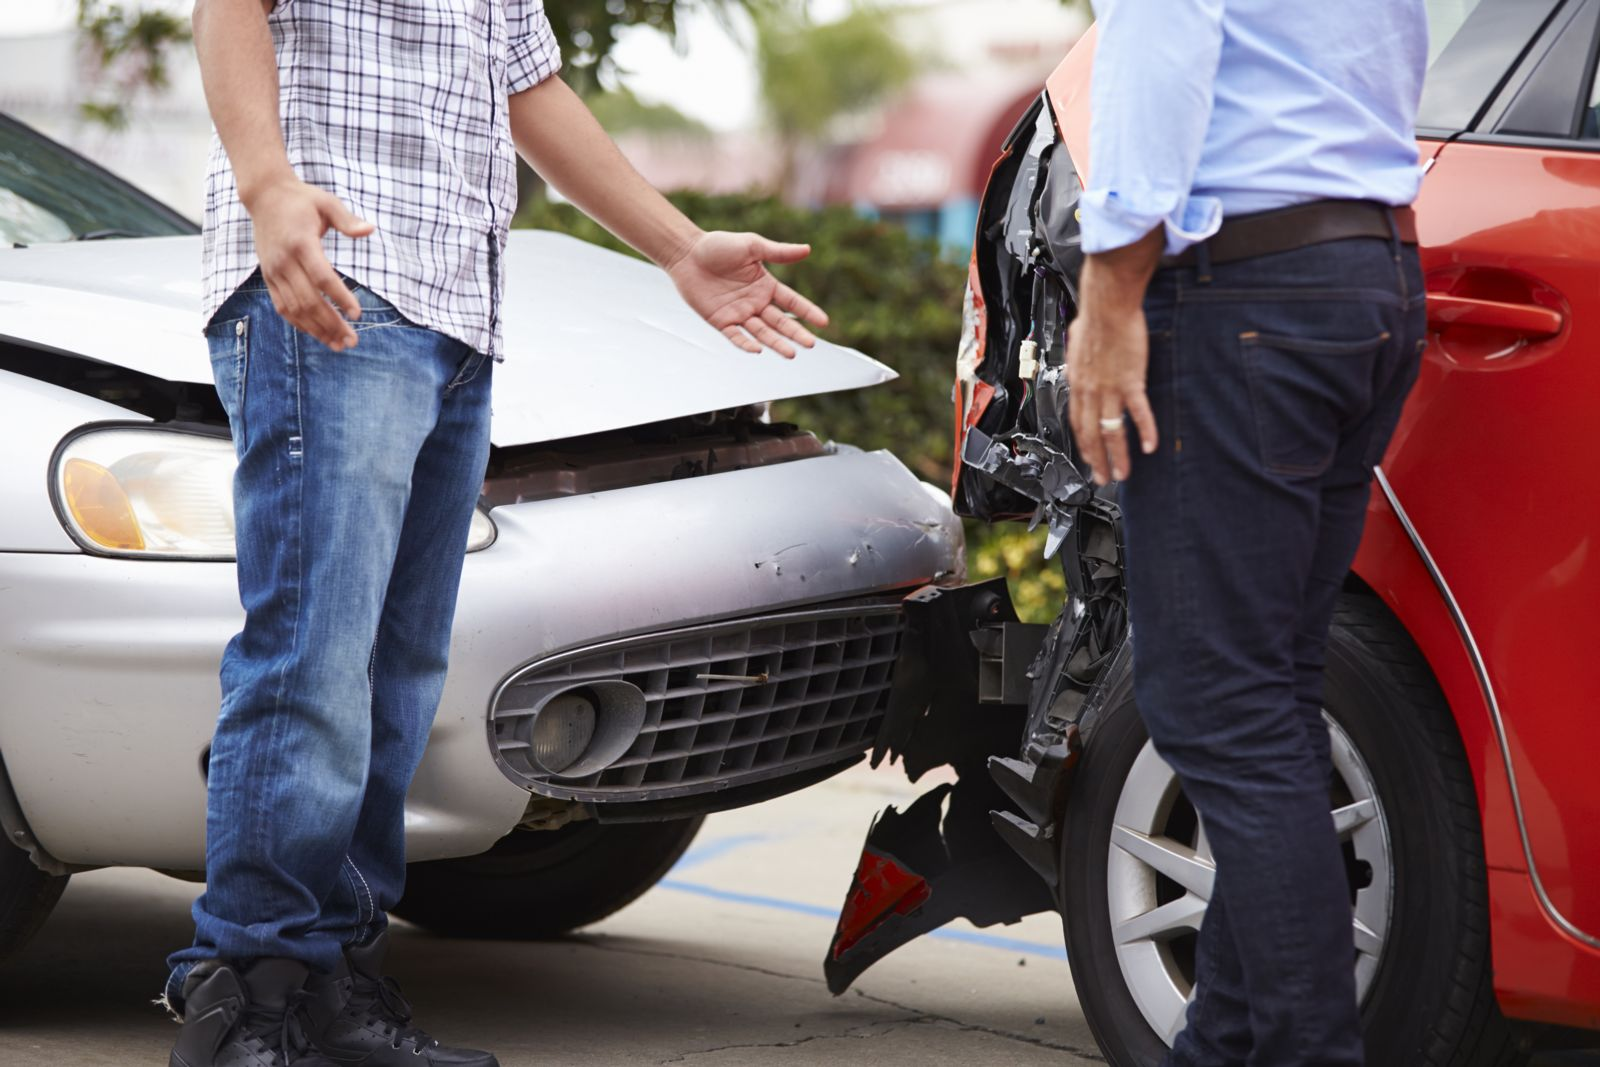 Two men exchanging insurance information after car accident.